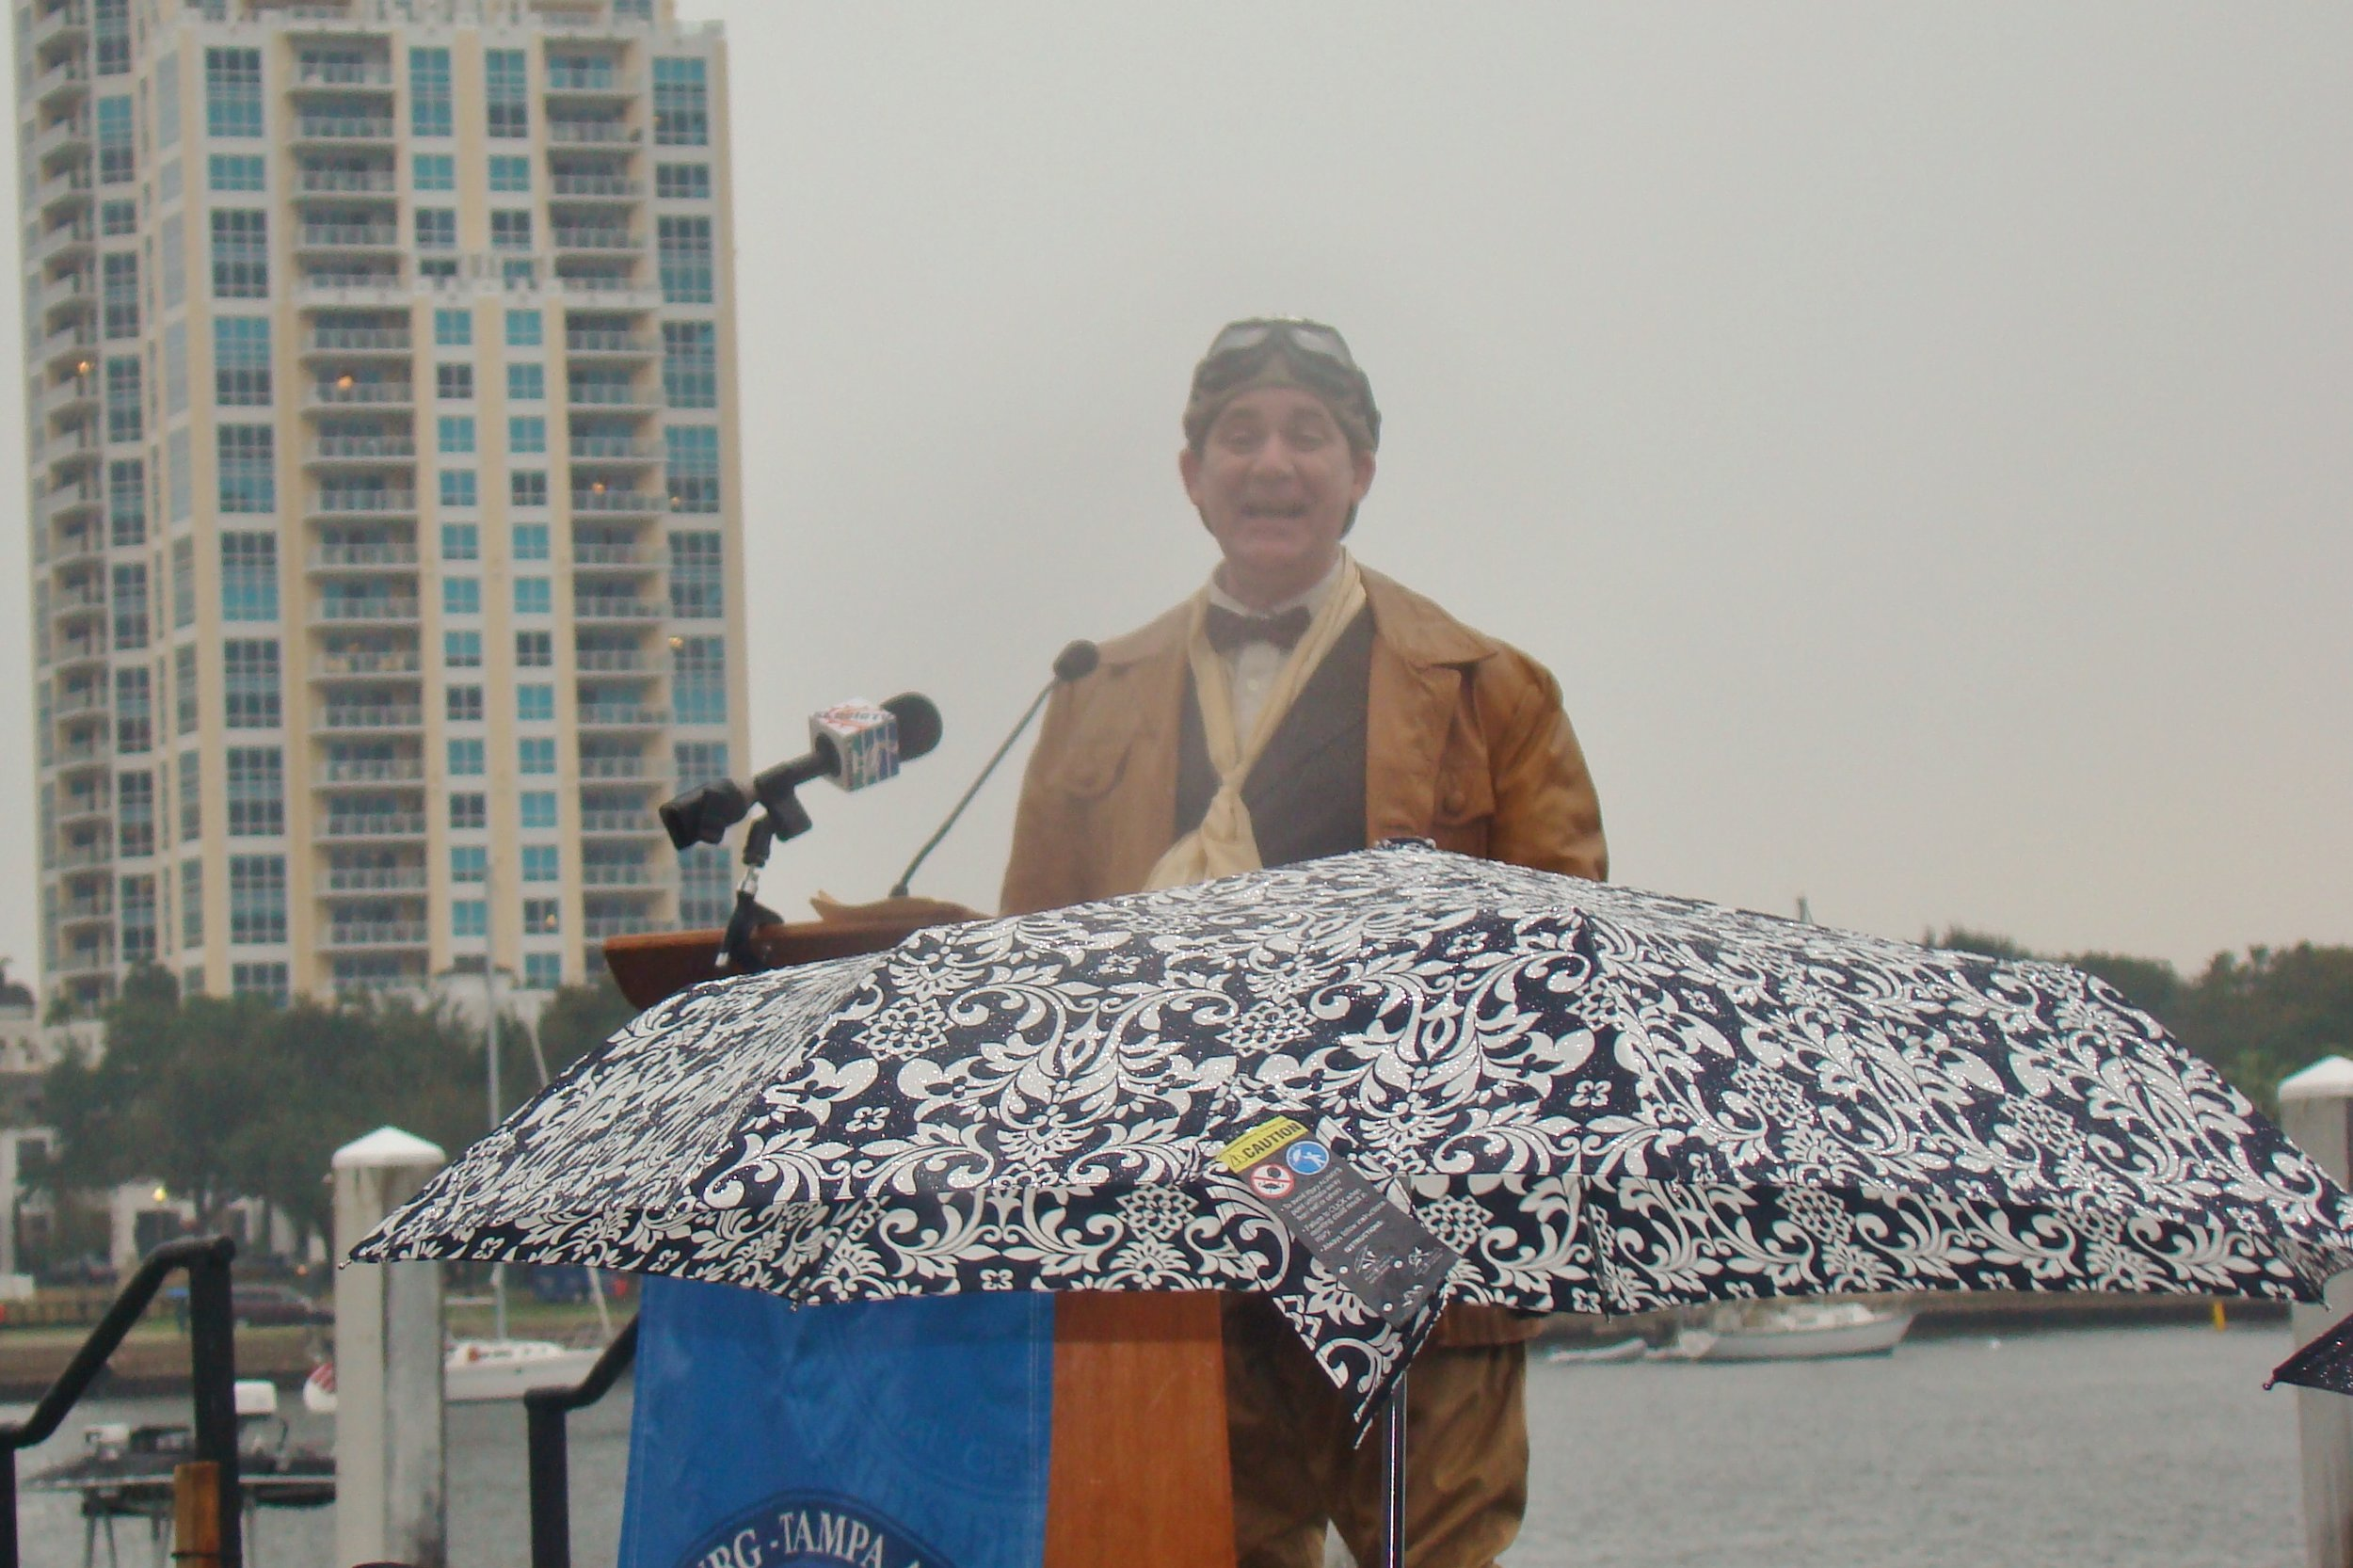 Tony Jannus - a. k. a., Michael Norton - addressing crowd in rain, 1 Jan '14.JPG